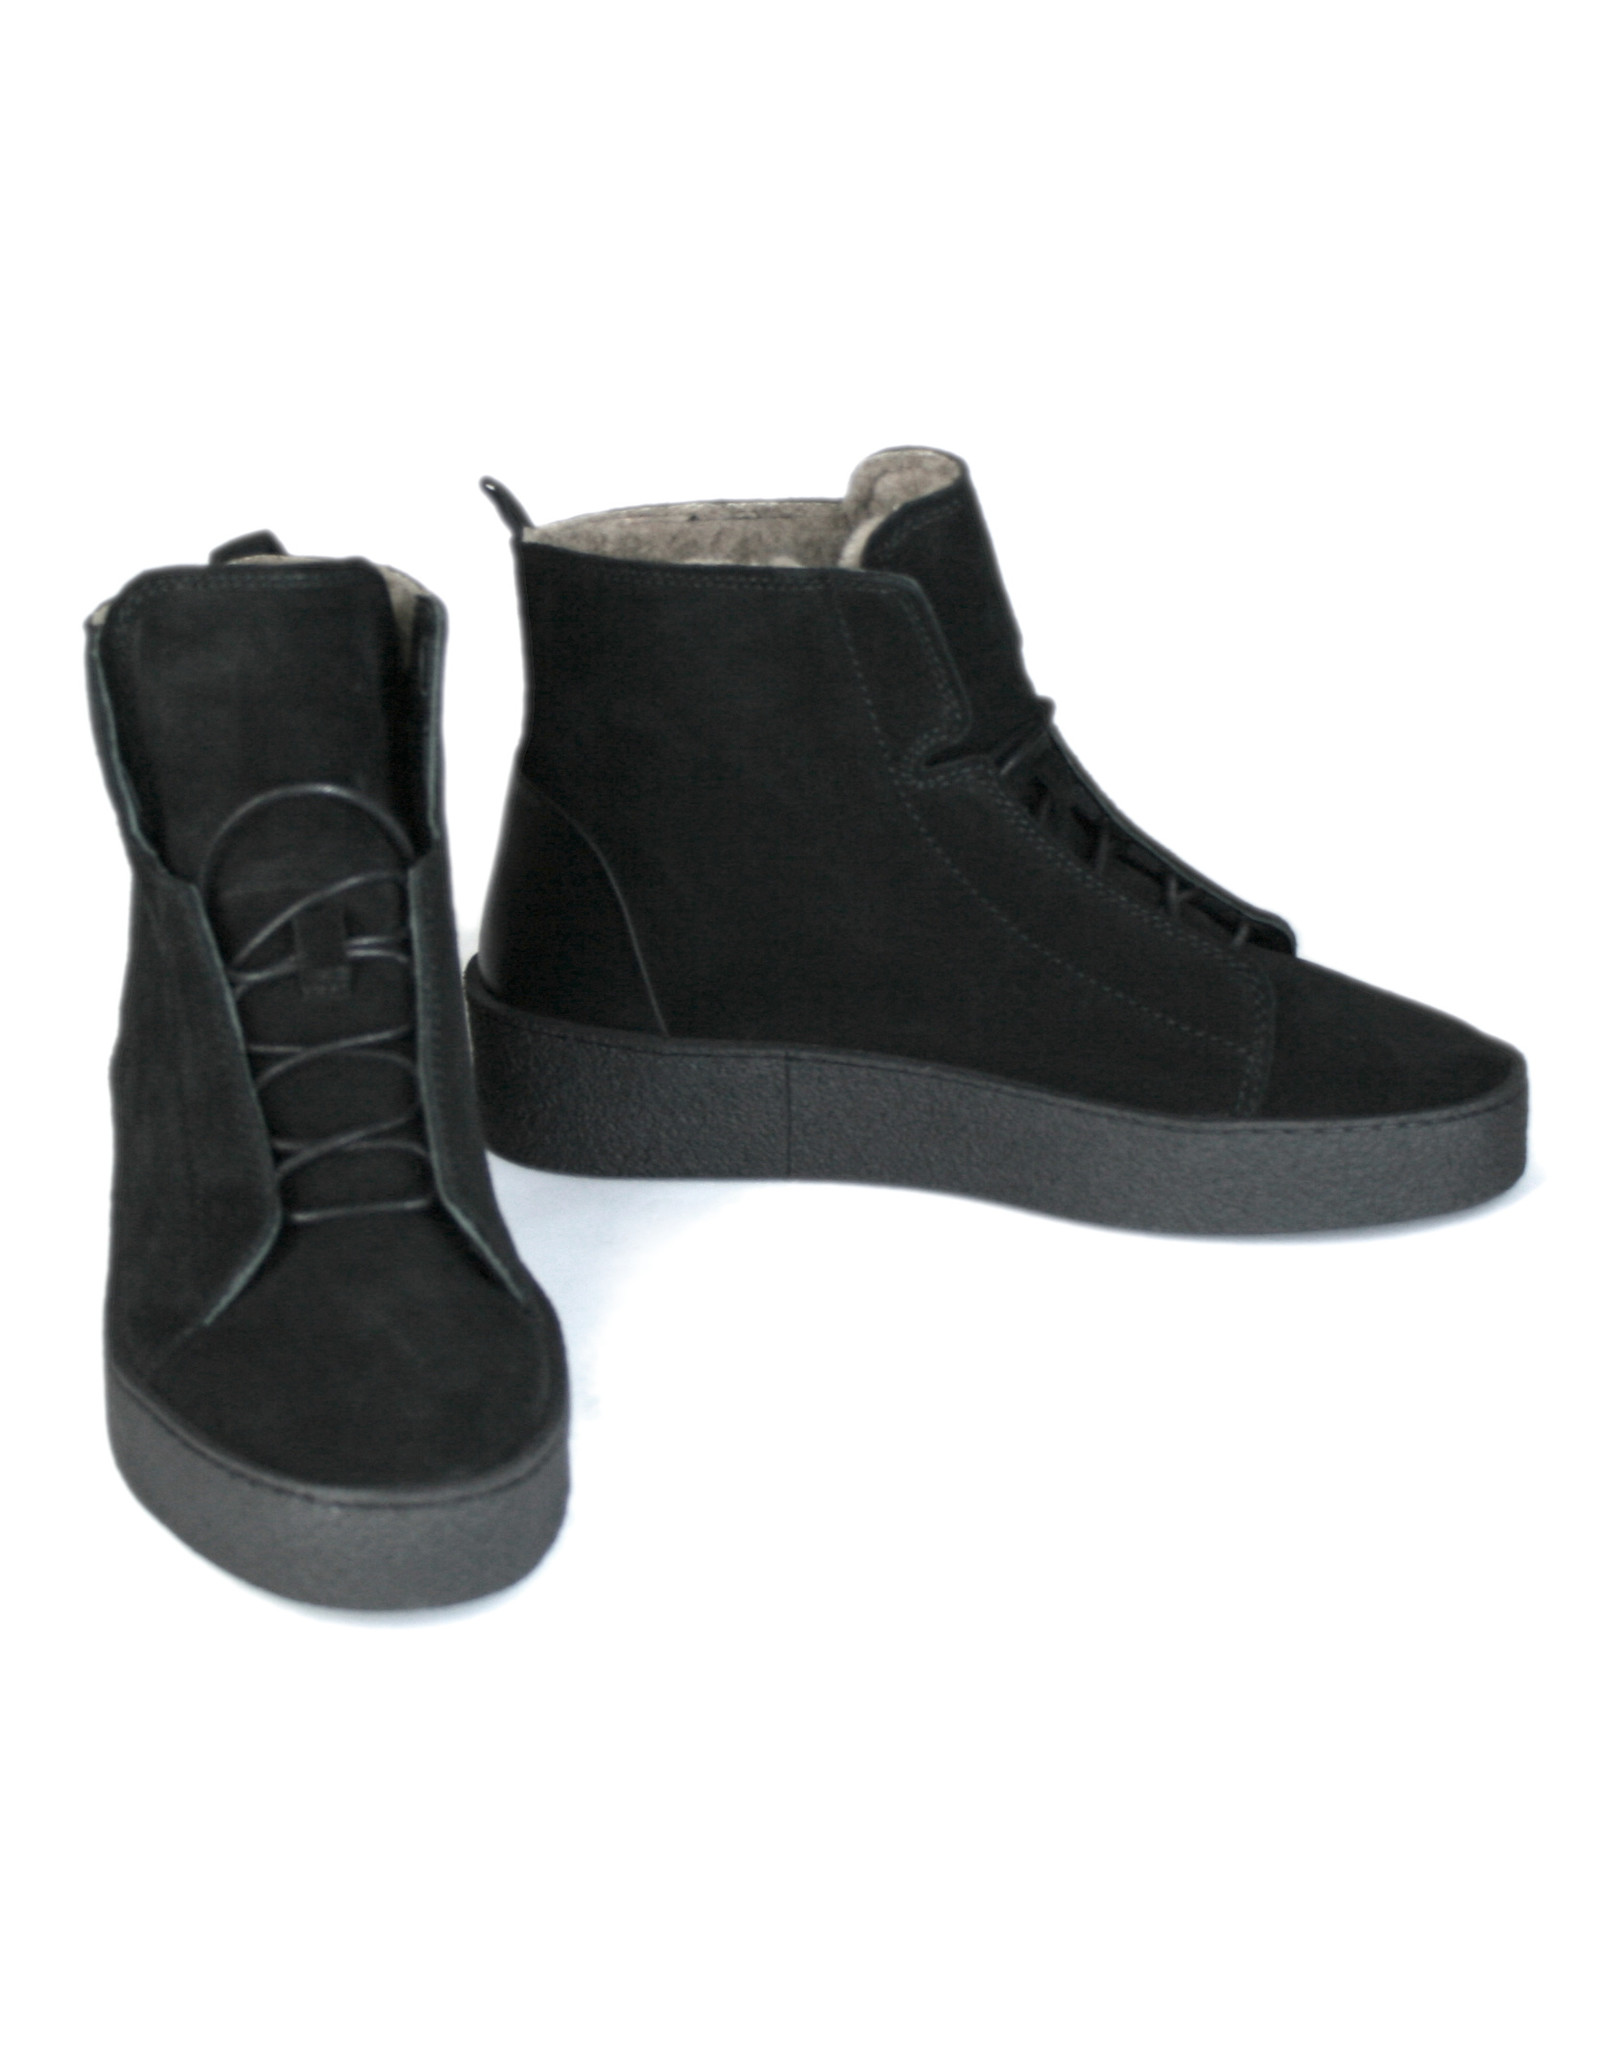 Ten Points laced suede shoes, lined in real wool